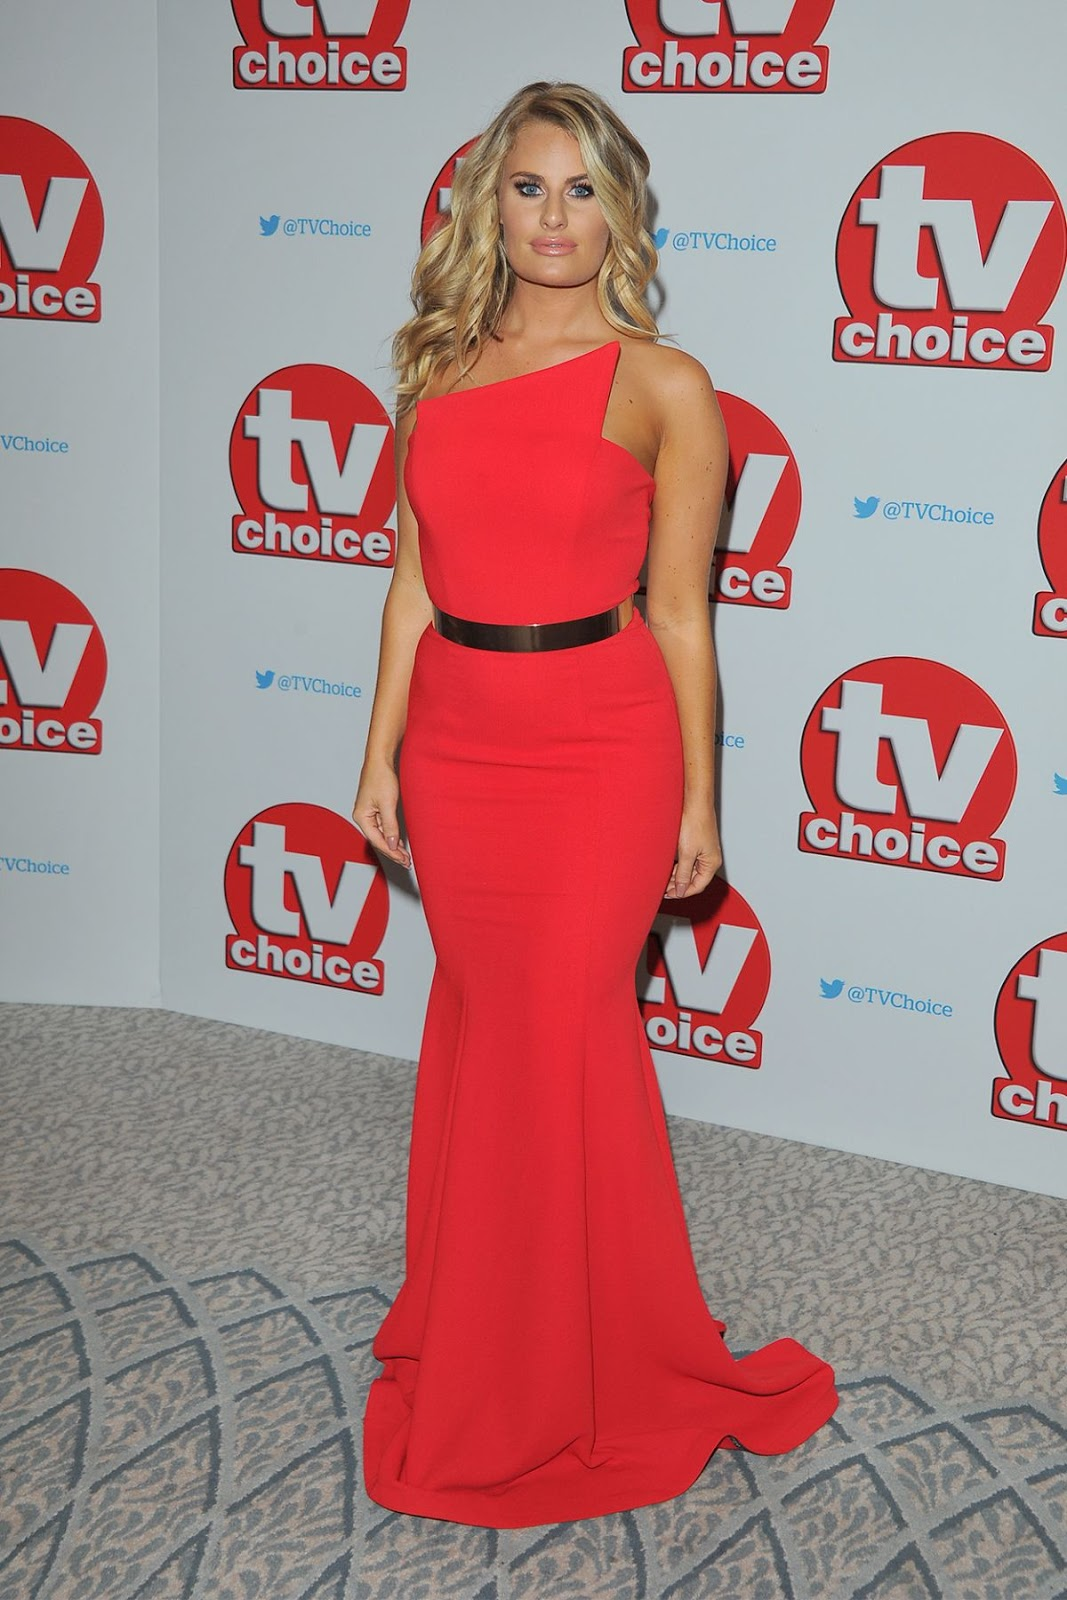 HD Photos of Danielle Armstrong At TV Choice Awards In London